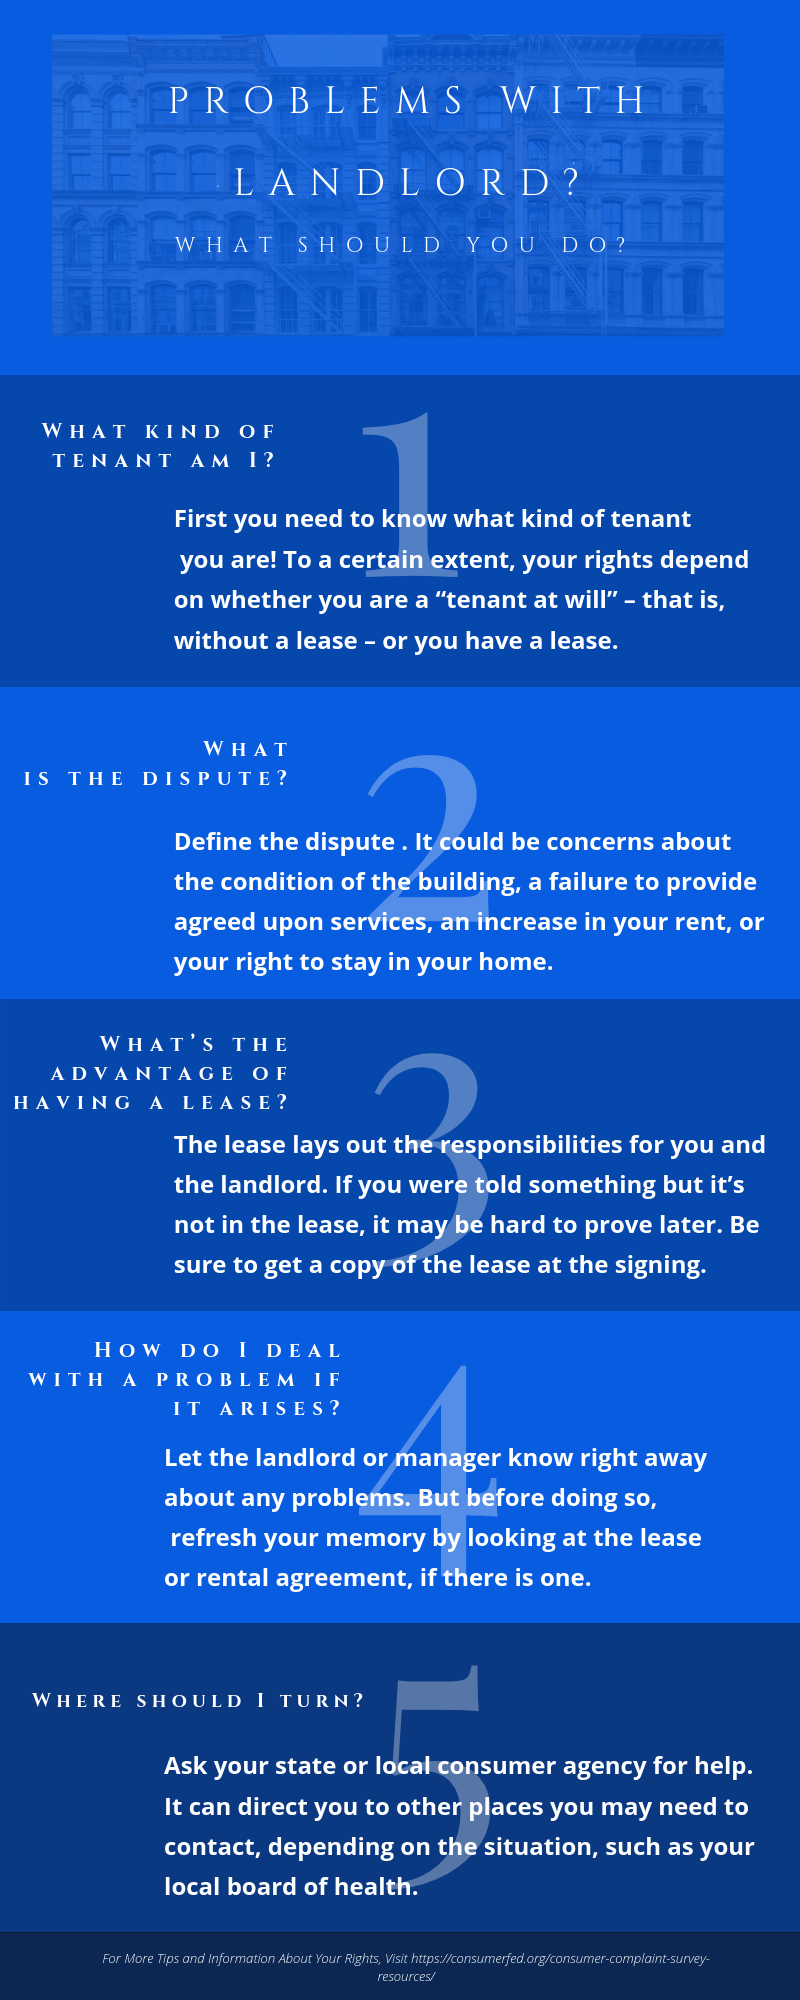 I Am Having Problems With My Landlord  What Should I Do